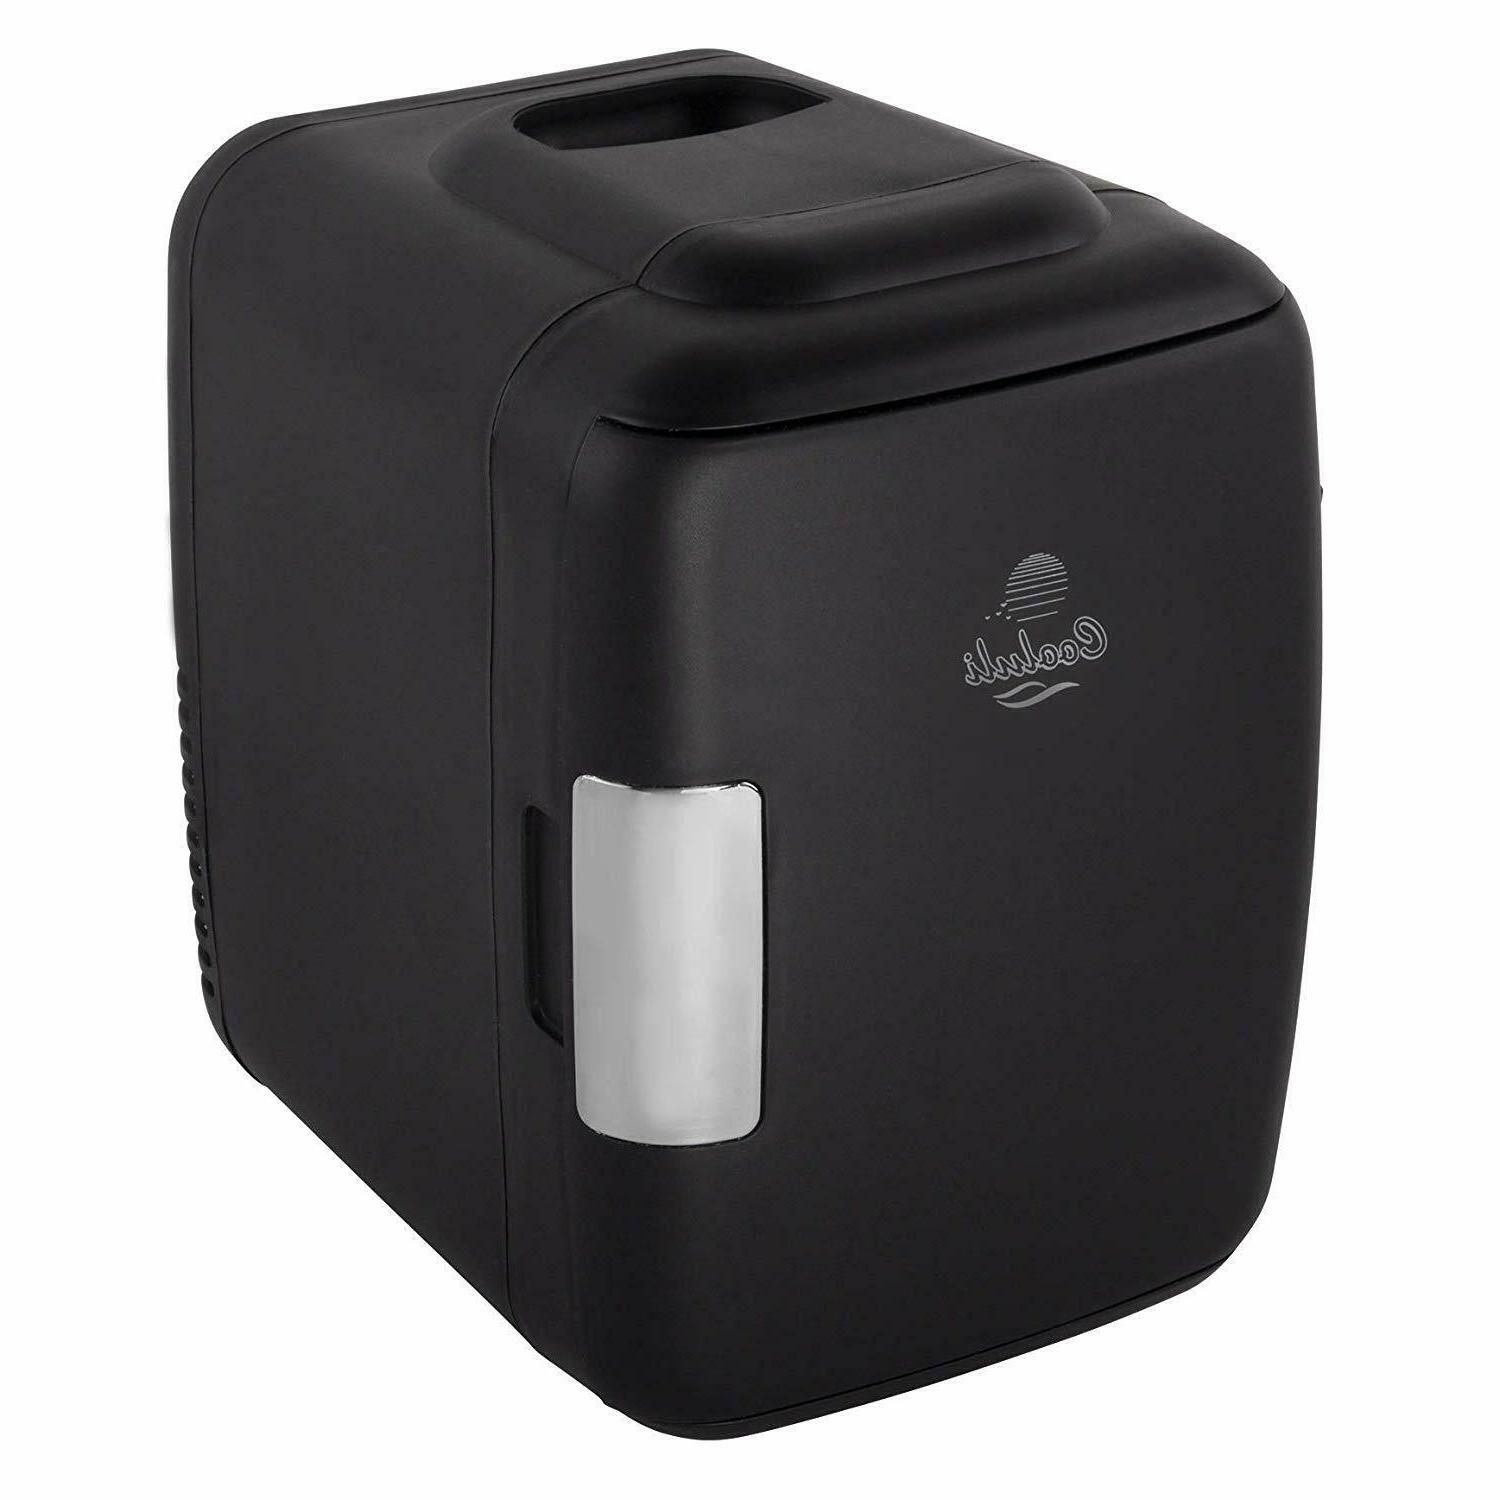 Cooluli Classic 4-liter Multiple Functions Use Compact Coole